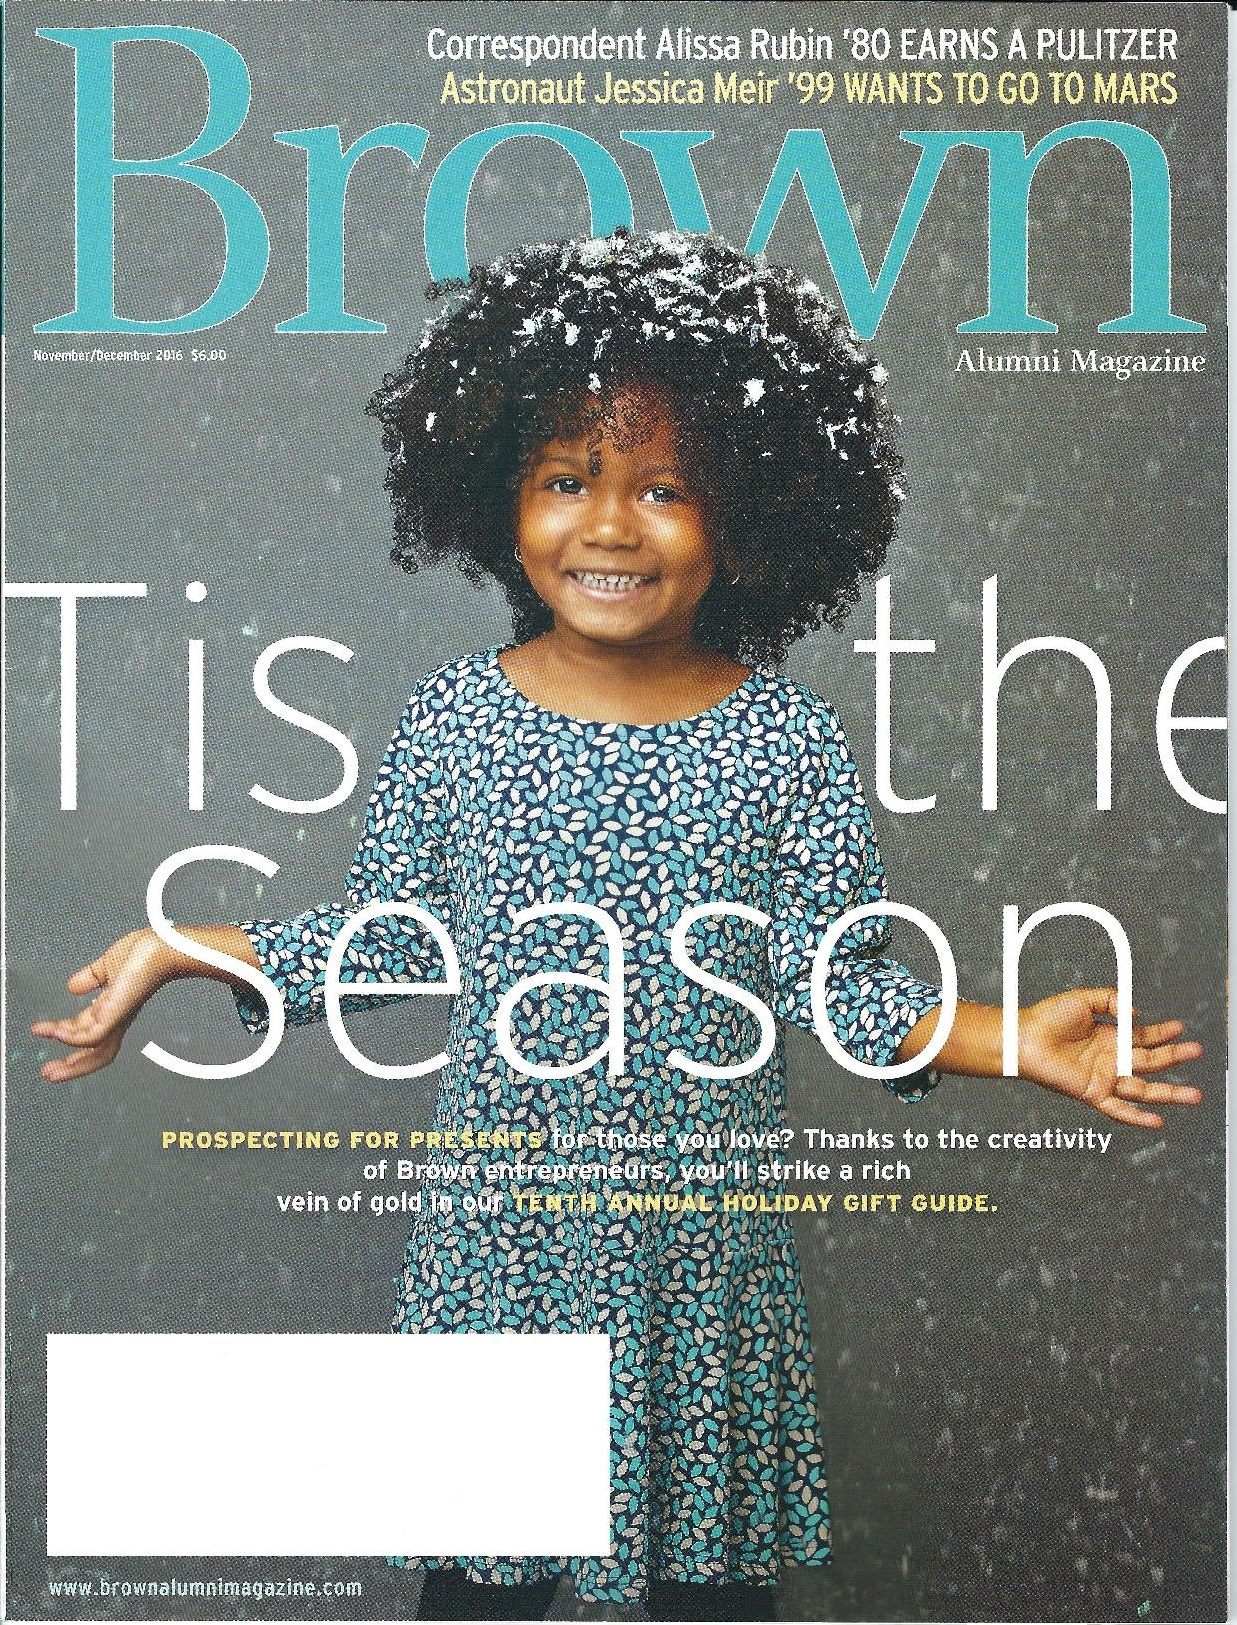 Brown Alumni Magazine